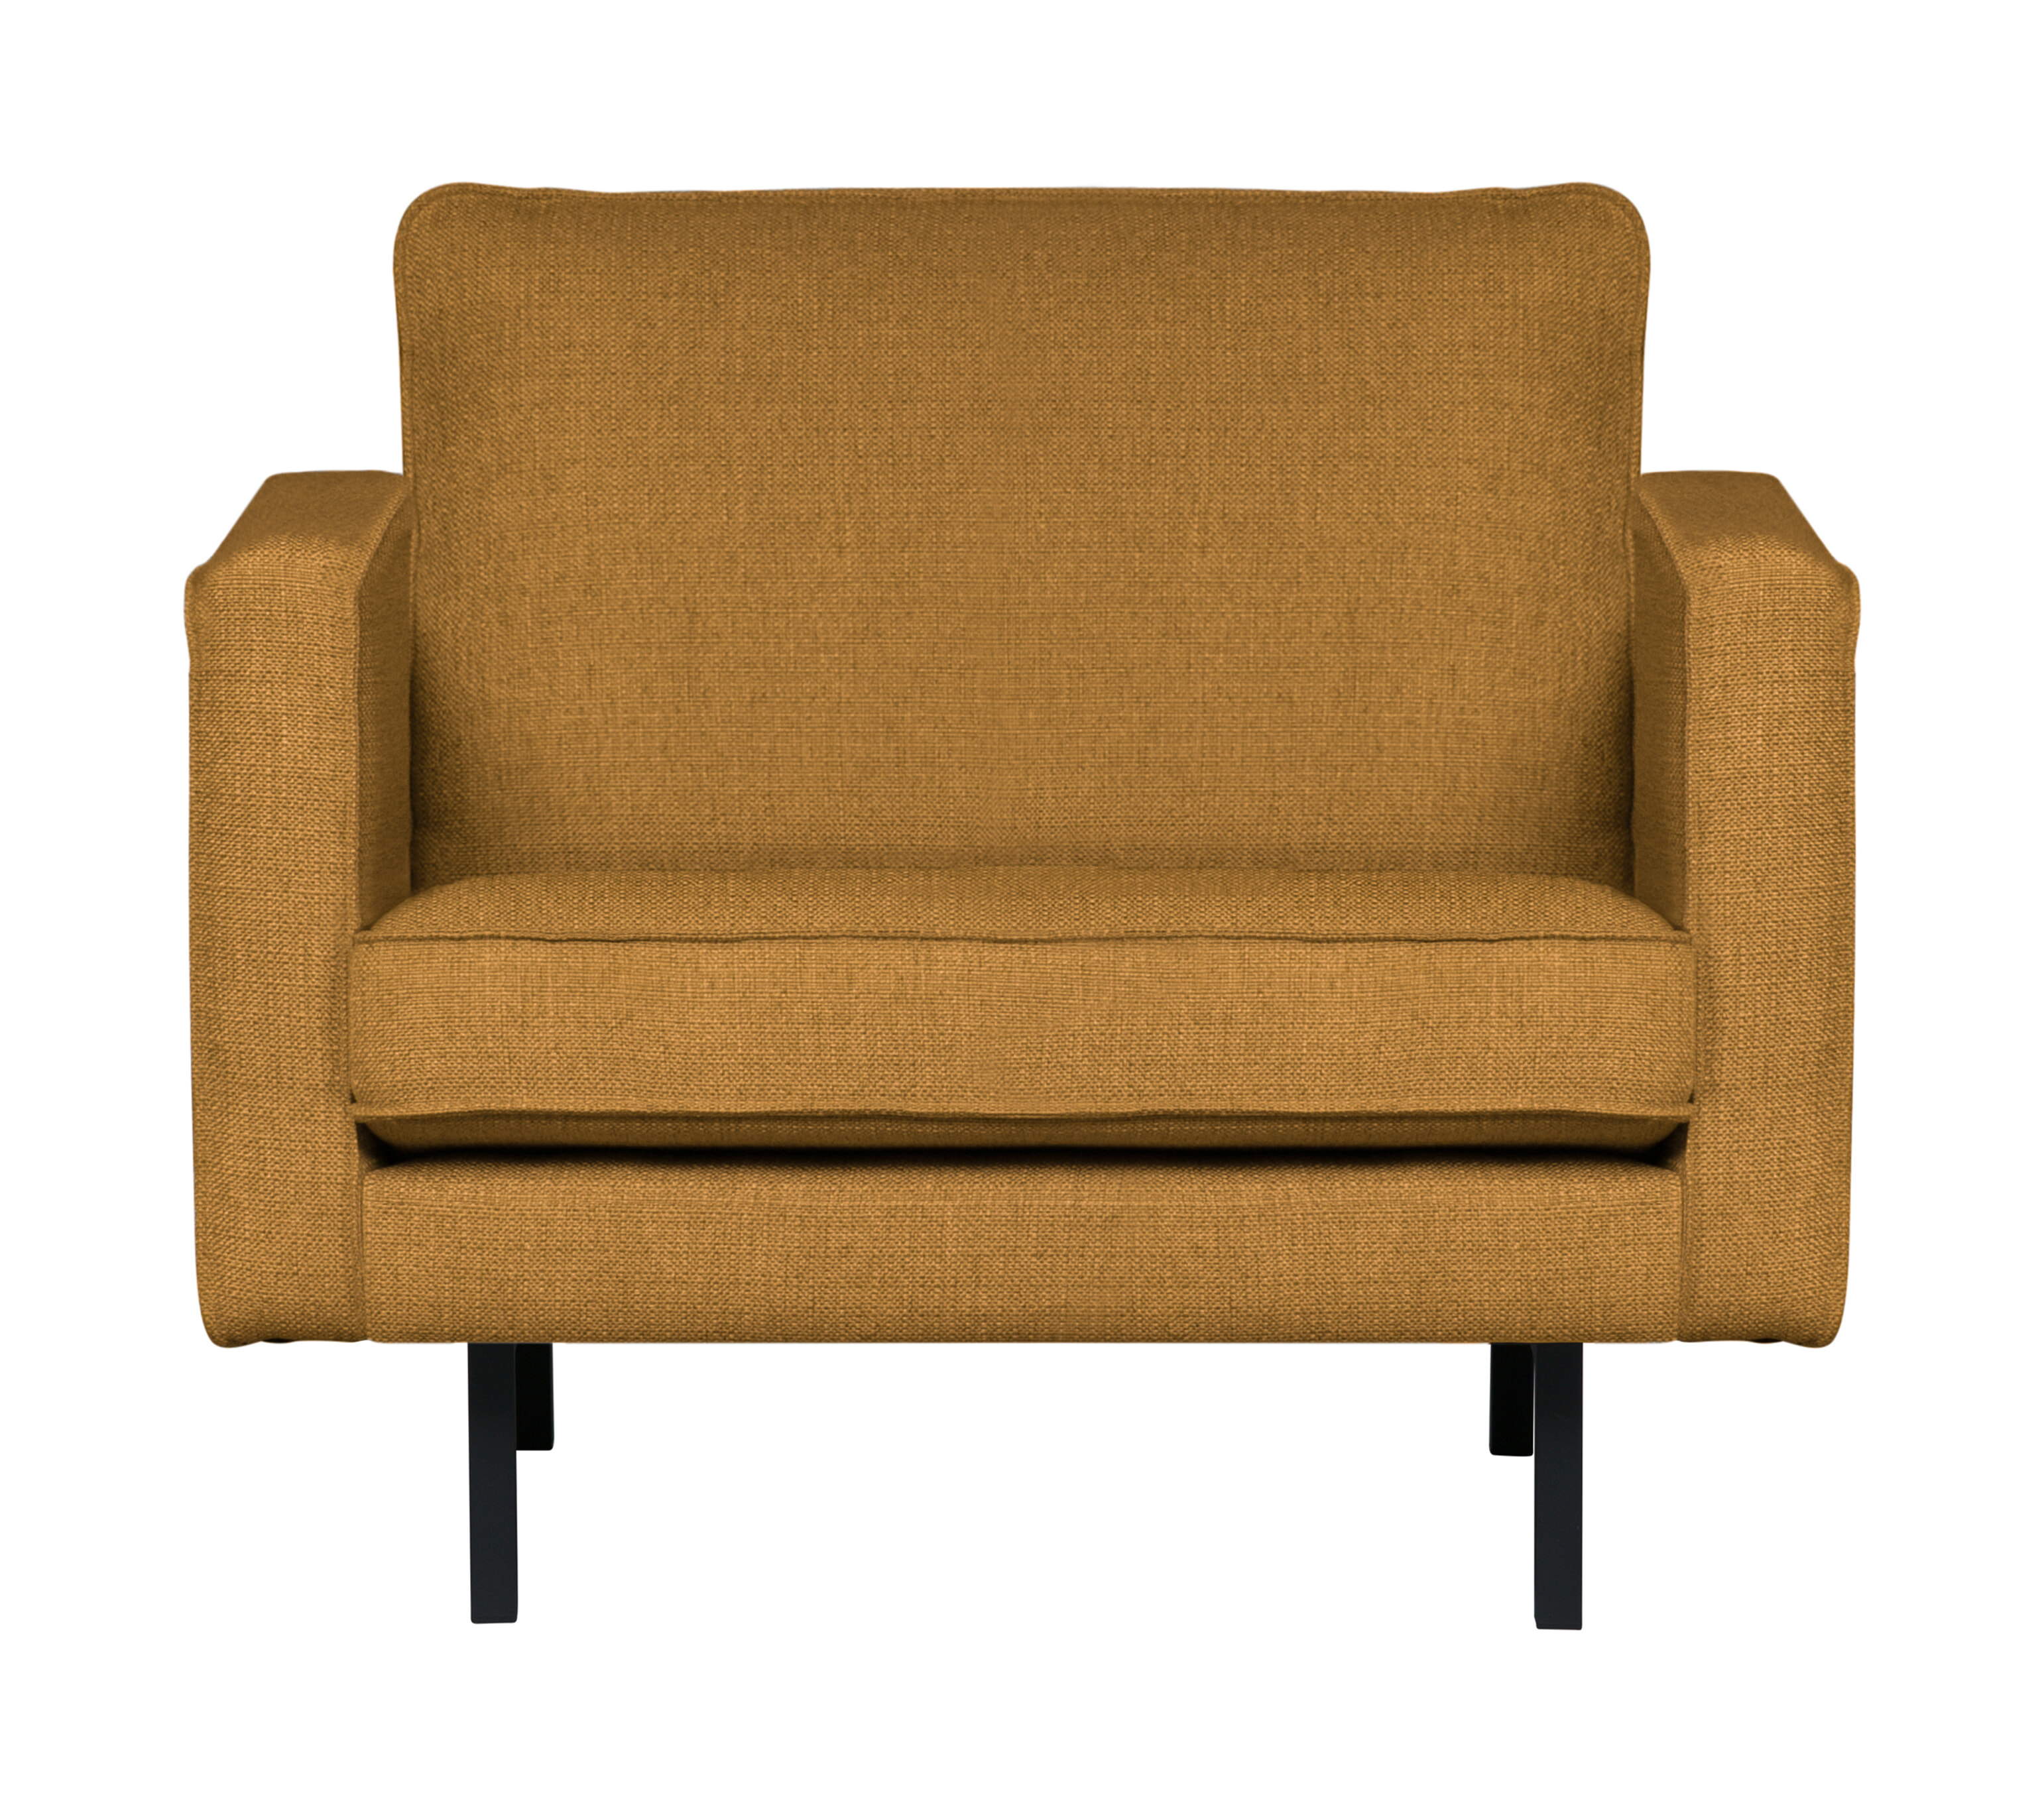 BePureHome Fauteuil 'Rodeo' Stretched, kleur Fudge